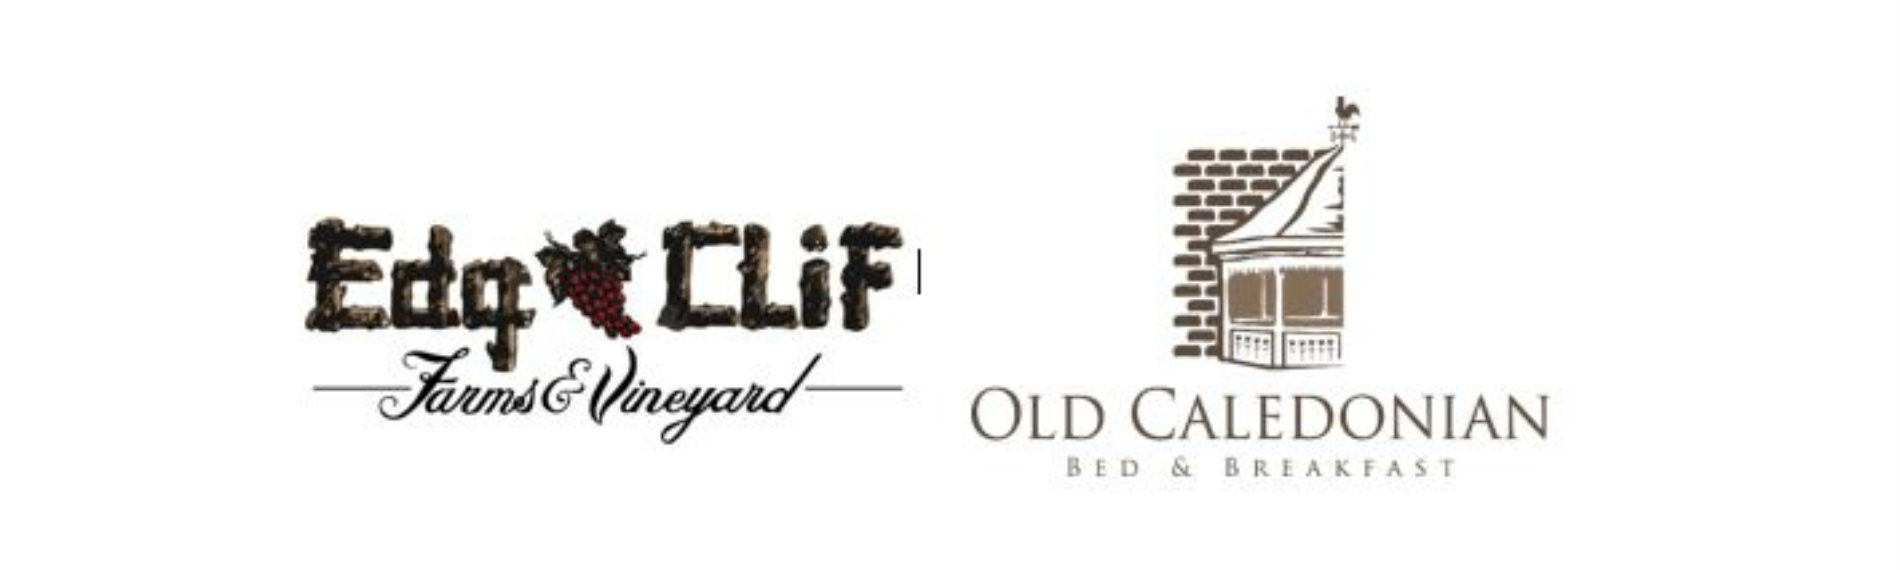 The logos for Edg-Clif Winery and the OCBB